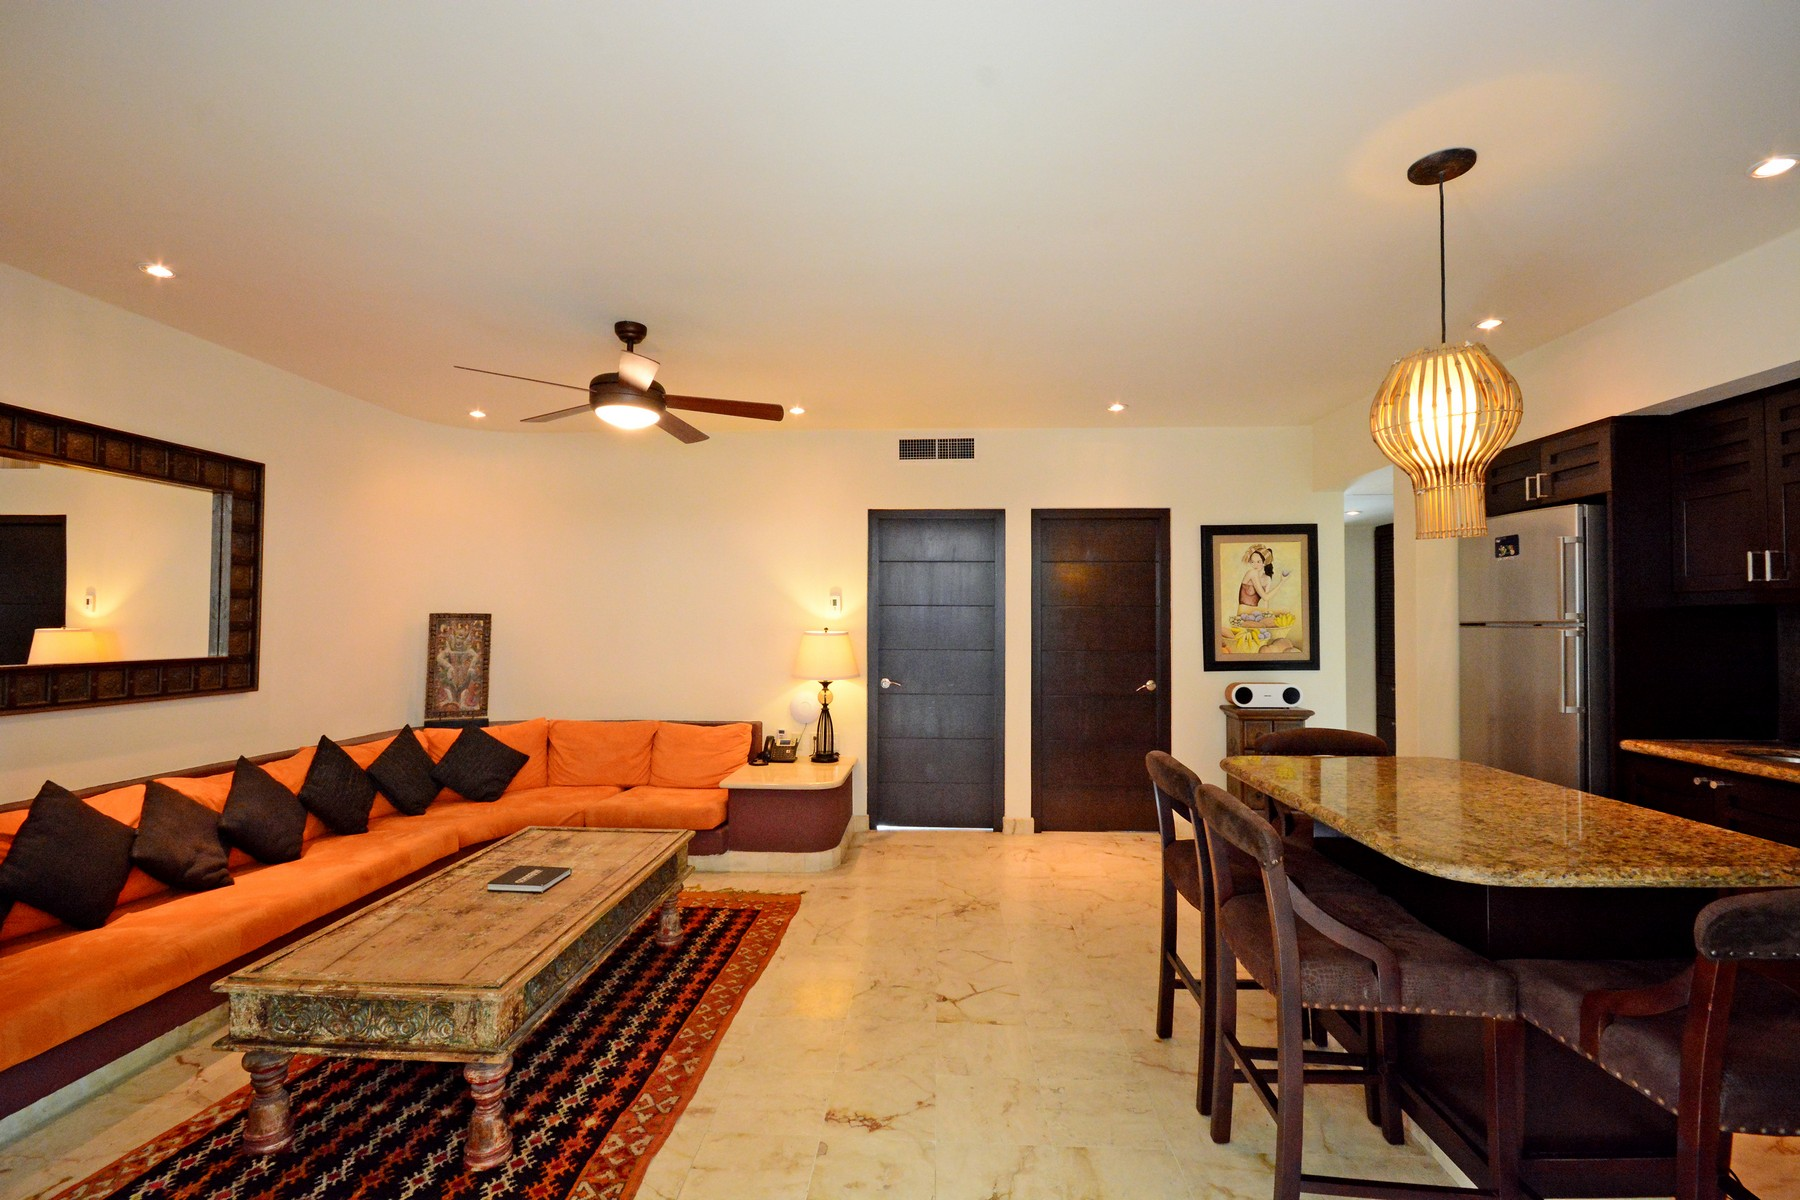 Additional photo for property listing at INSPIRING BEACHFRONT APARTMENT Oceanfront,  3rd Level, El Taj Calle 1era Nte, entre 12 y 14 Nte. Playa Del Carmen, Quintana Roo 77710 Mexico